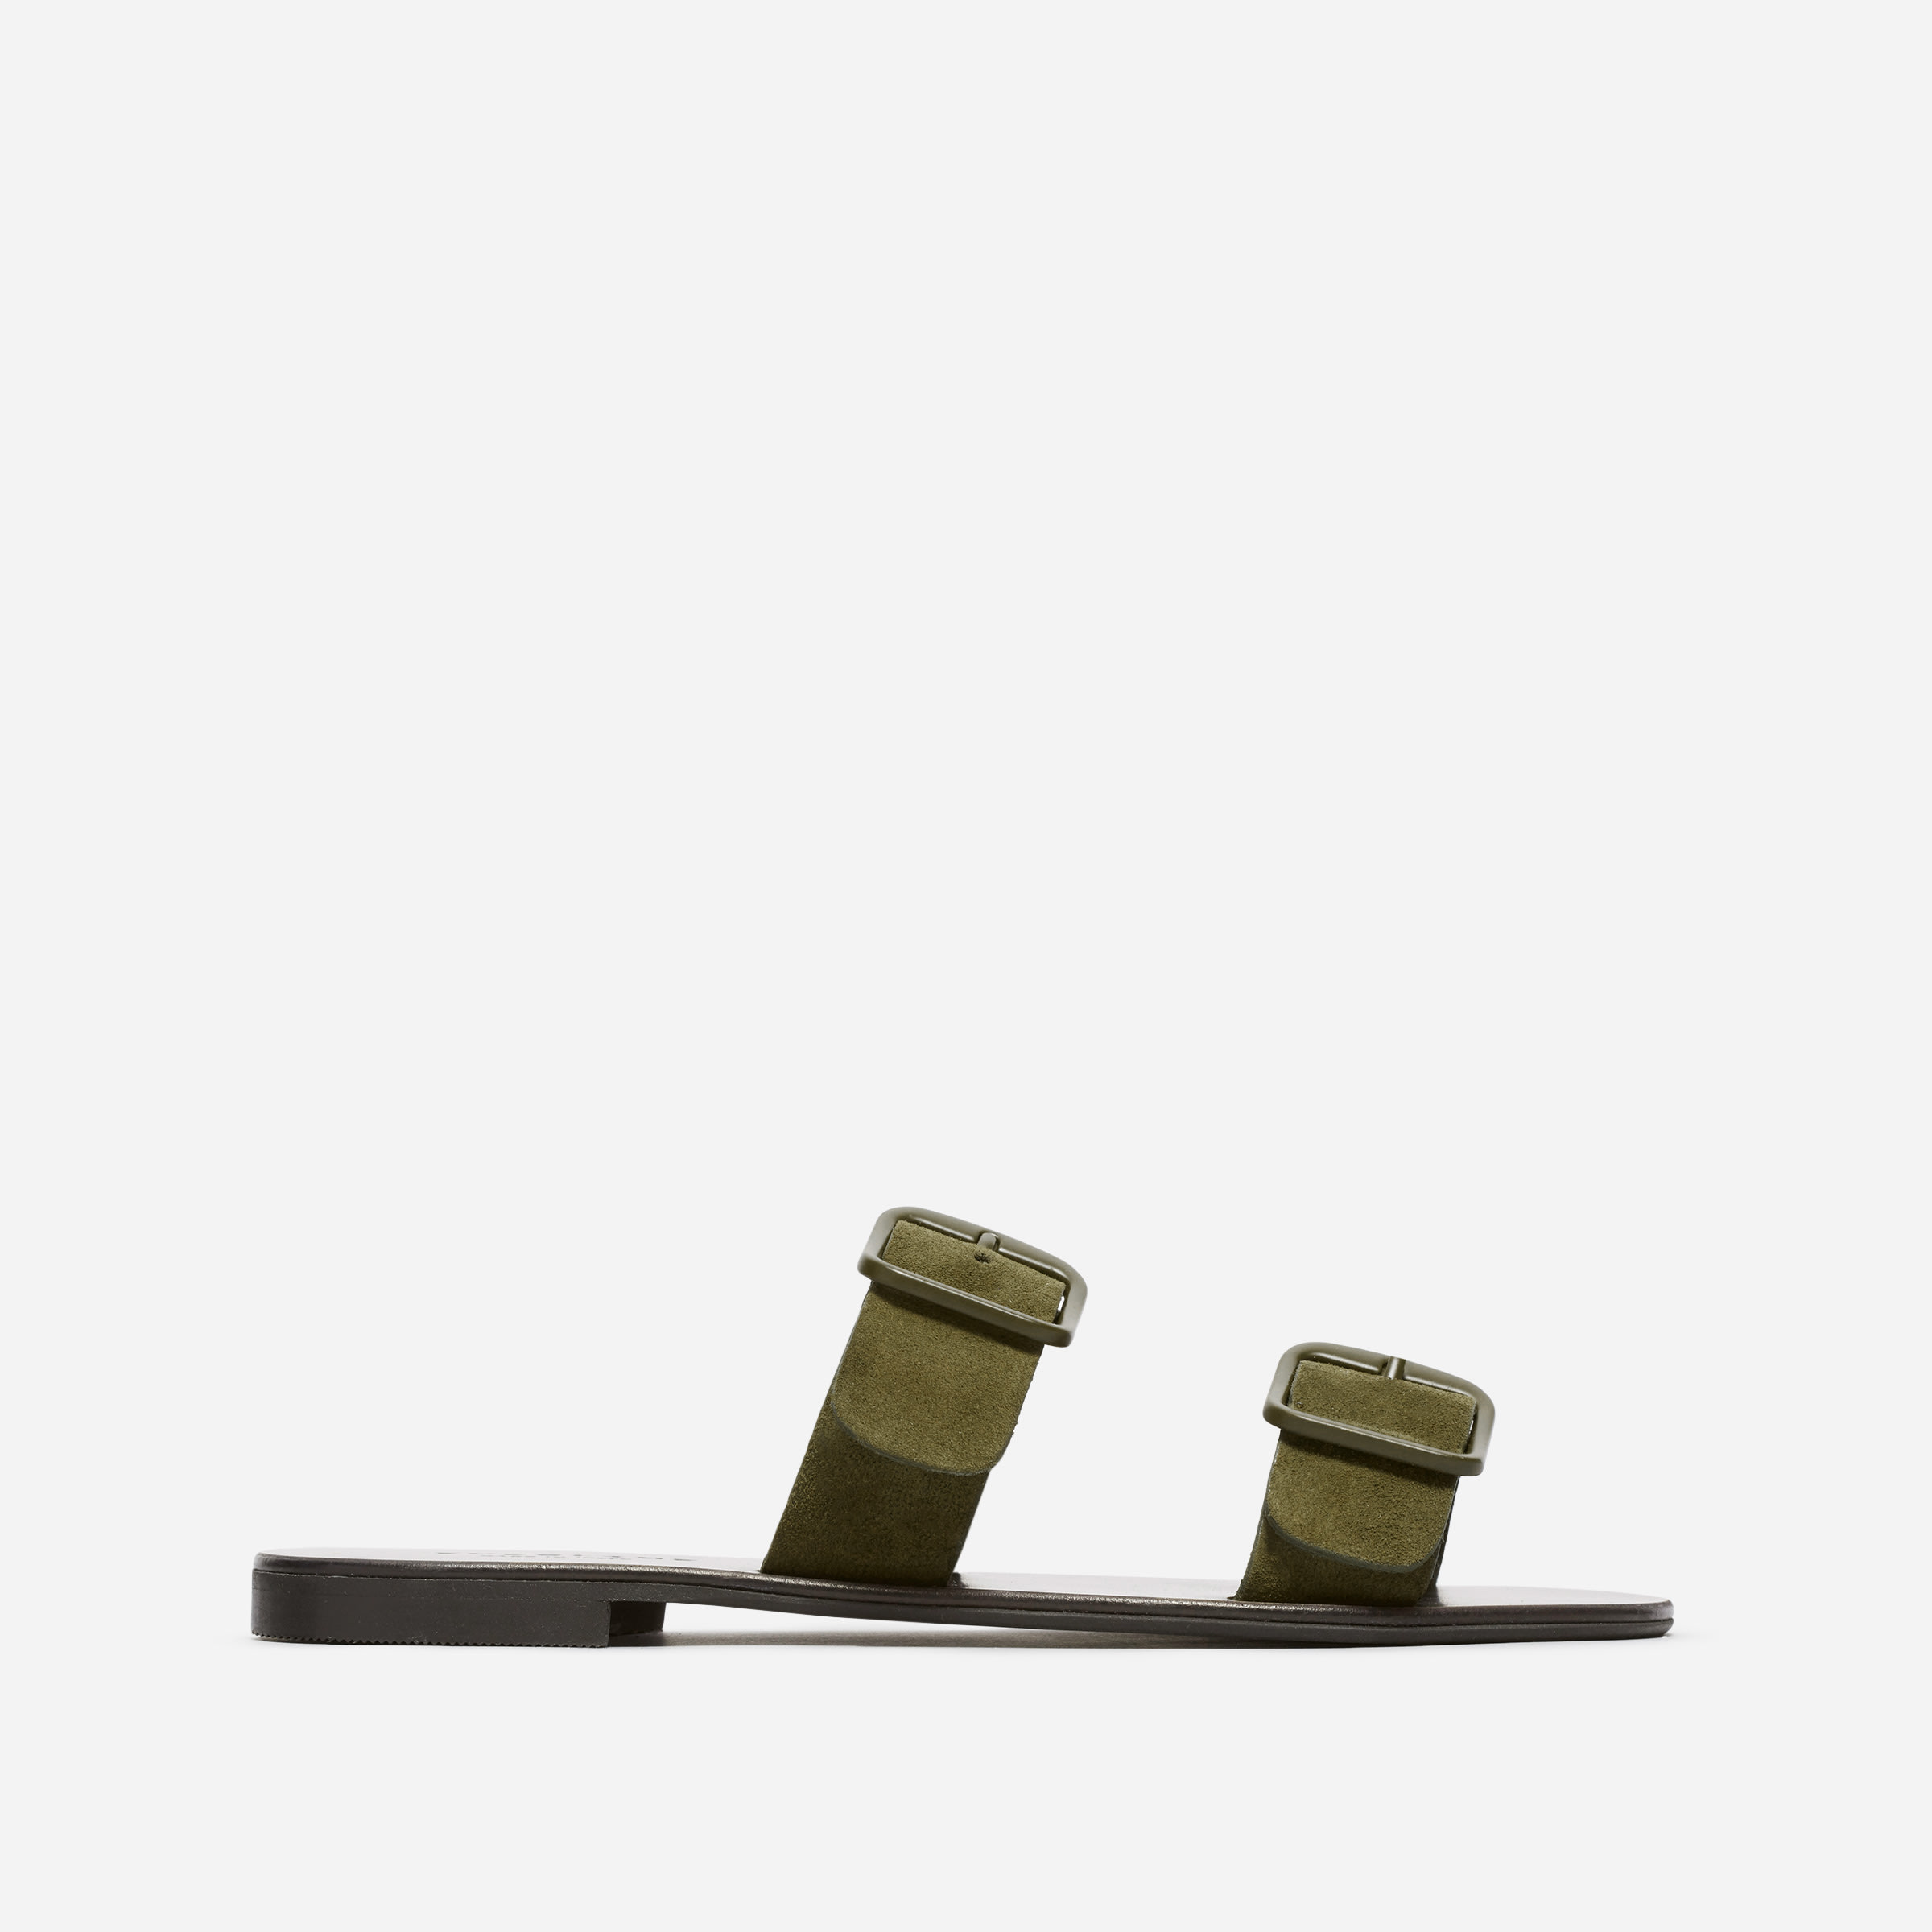 The Modern Buckle Sandal by Everlane